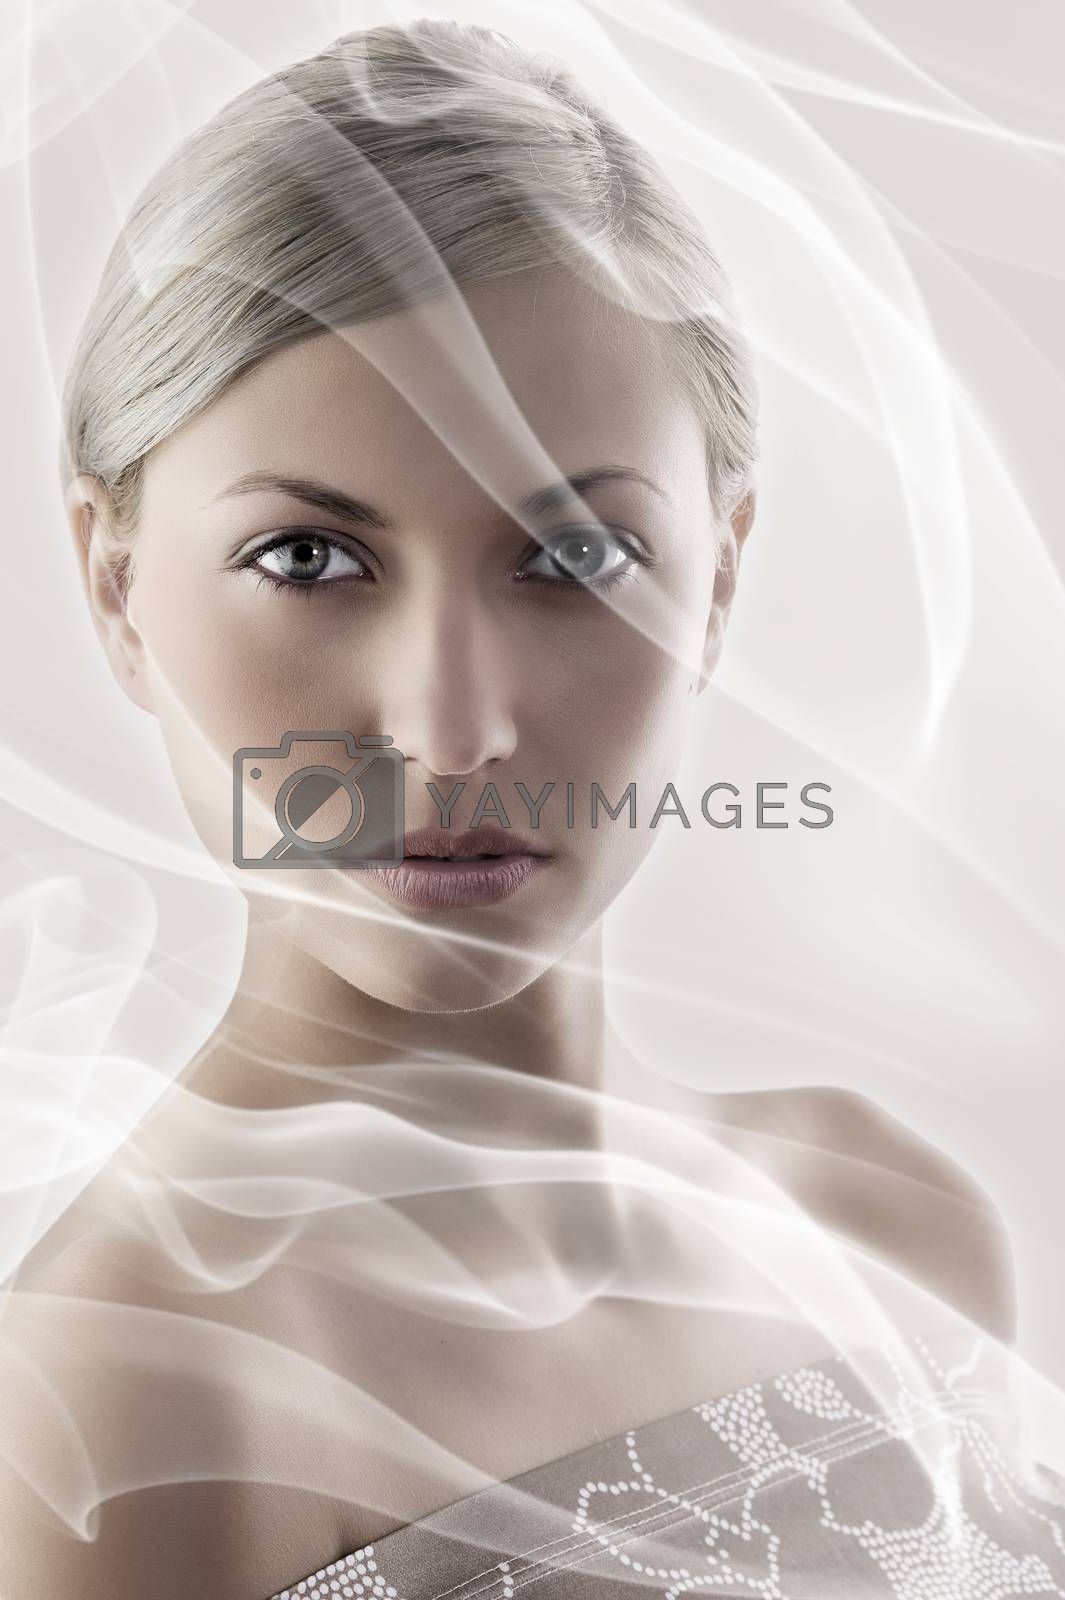 Royalty free image of the blond lady by fotoCD